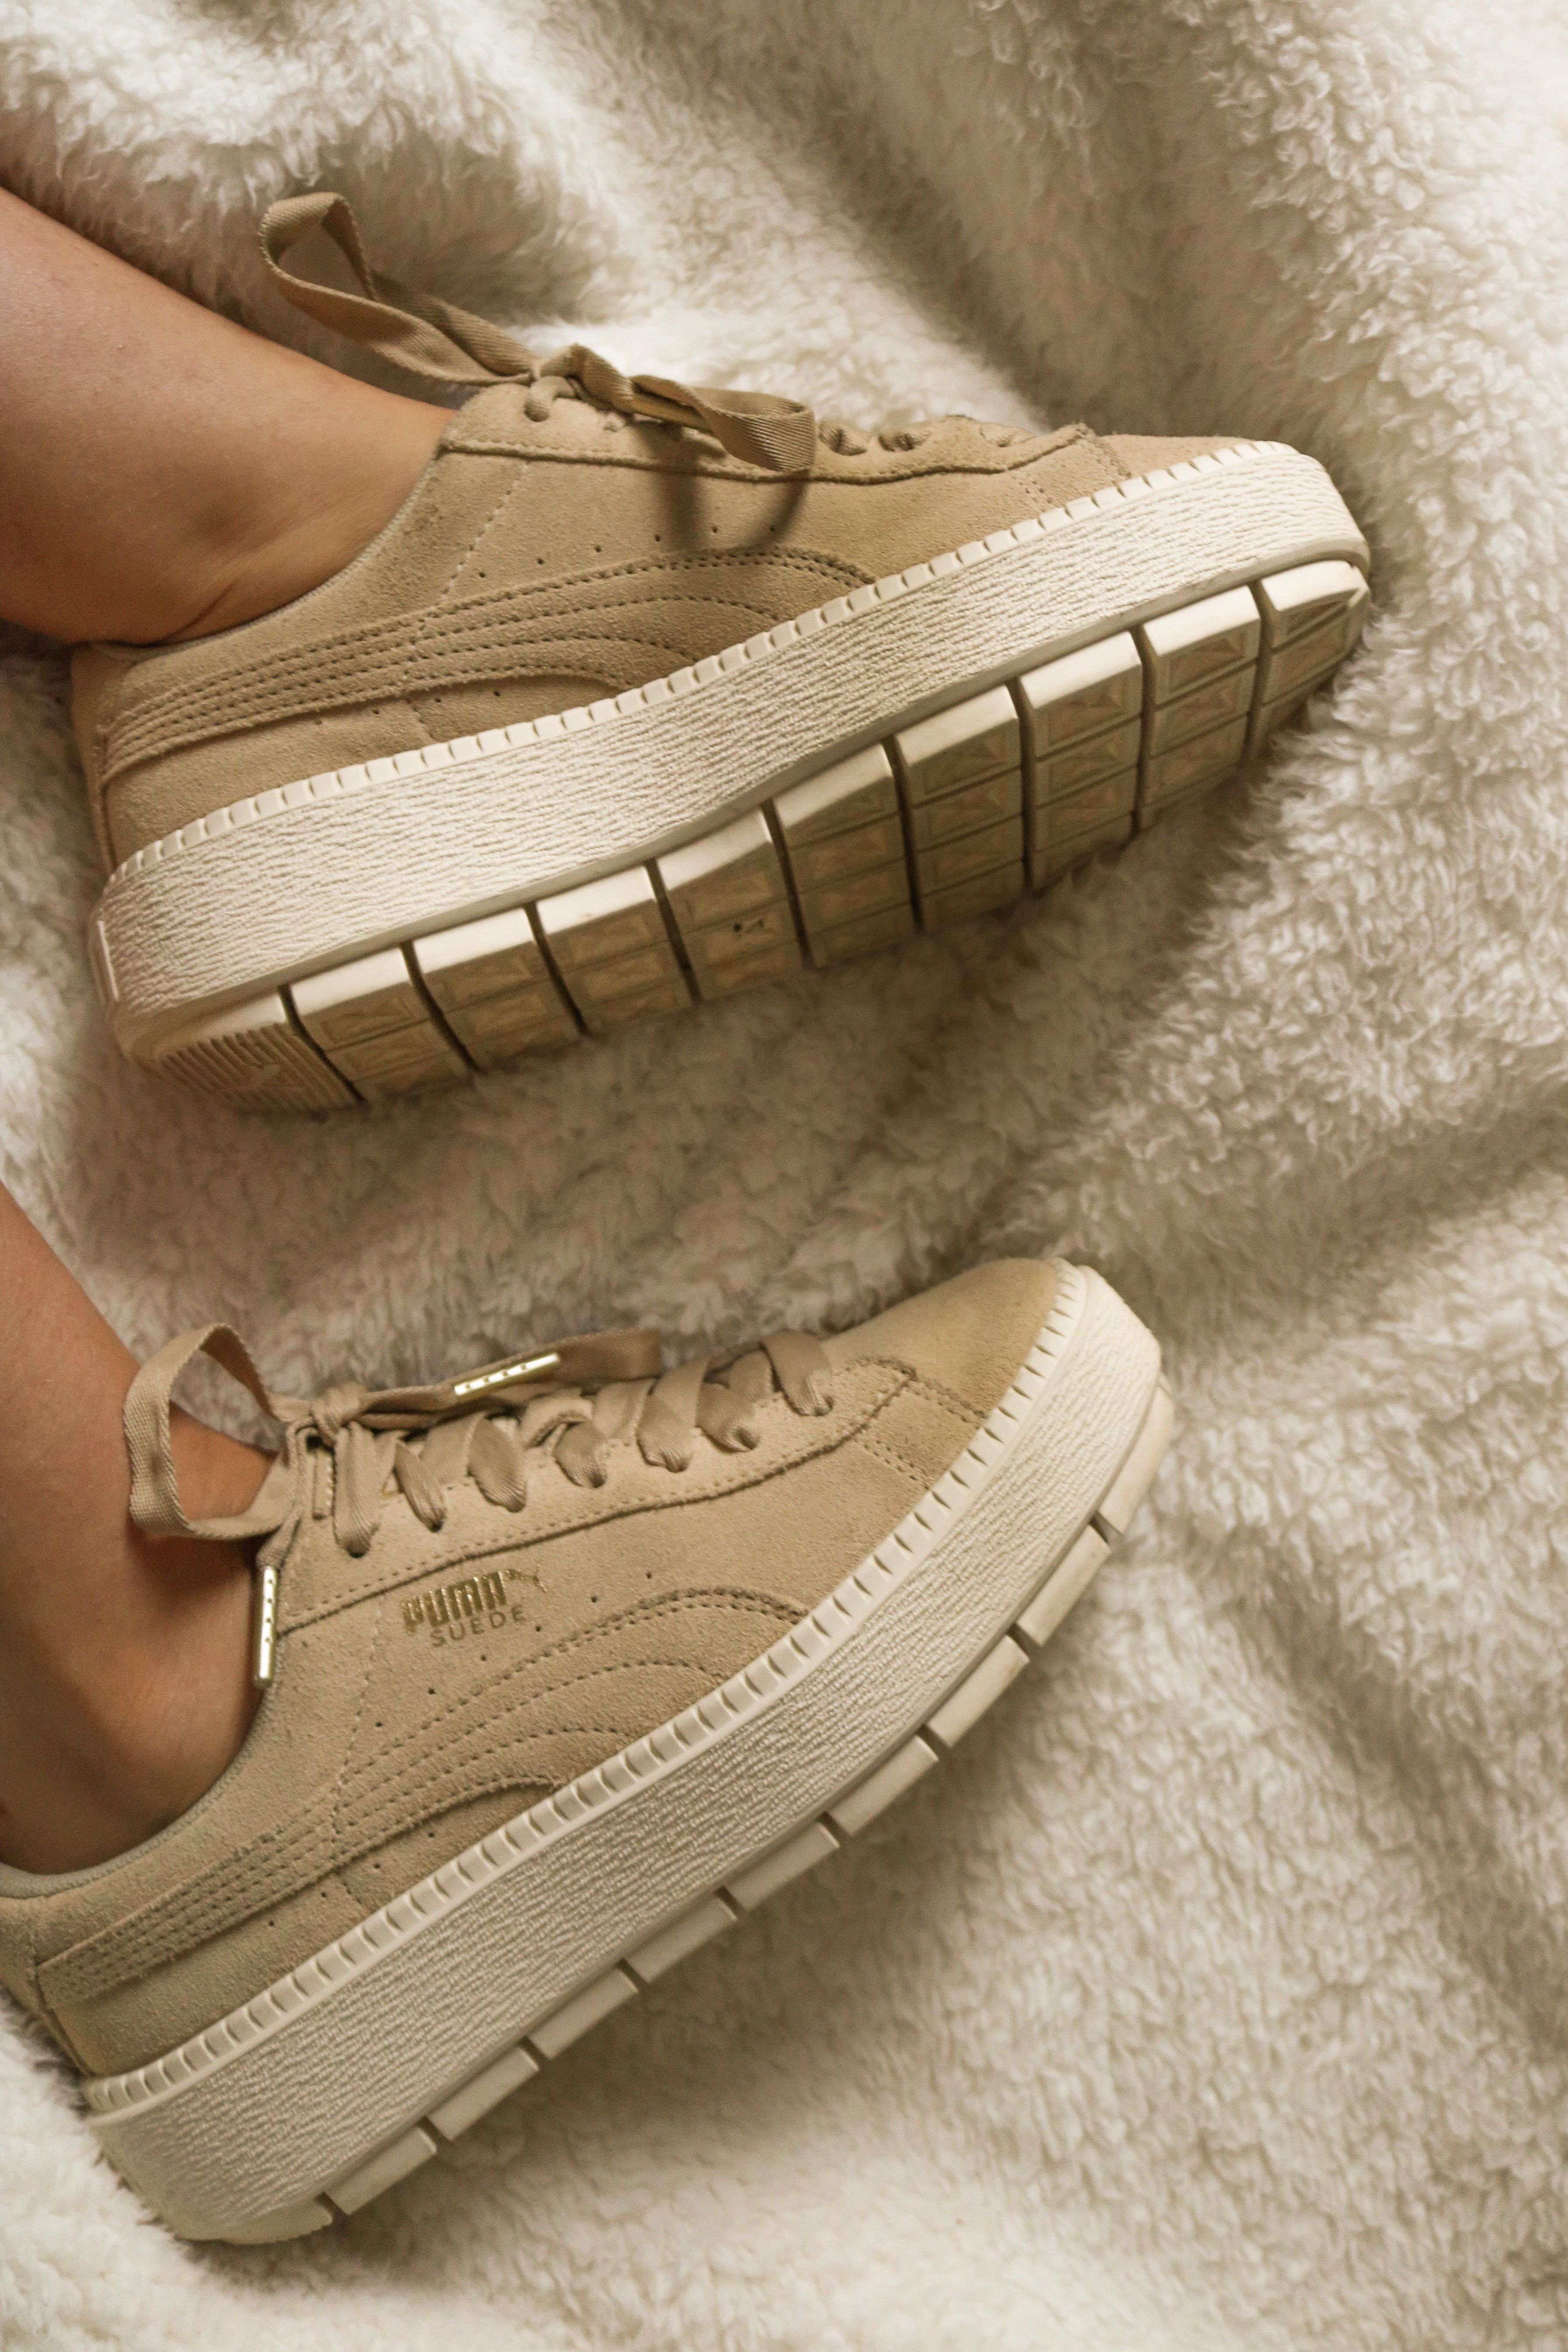 886df718b0e7c4 Puma Platform Trainers in Trace with Contrast Sole Suede Nude Beige Tan  Platform Trainers